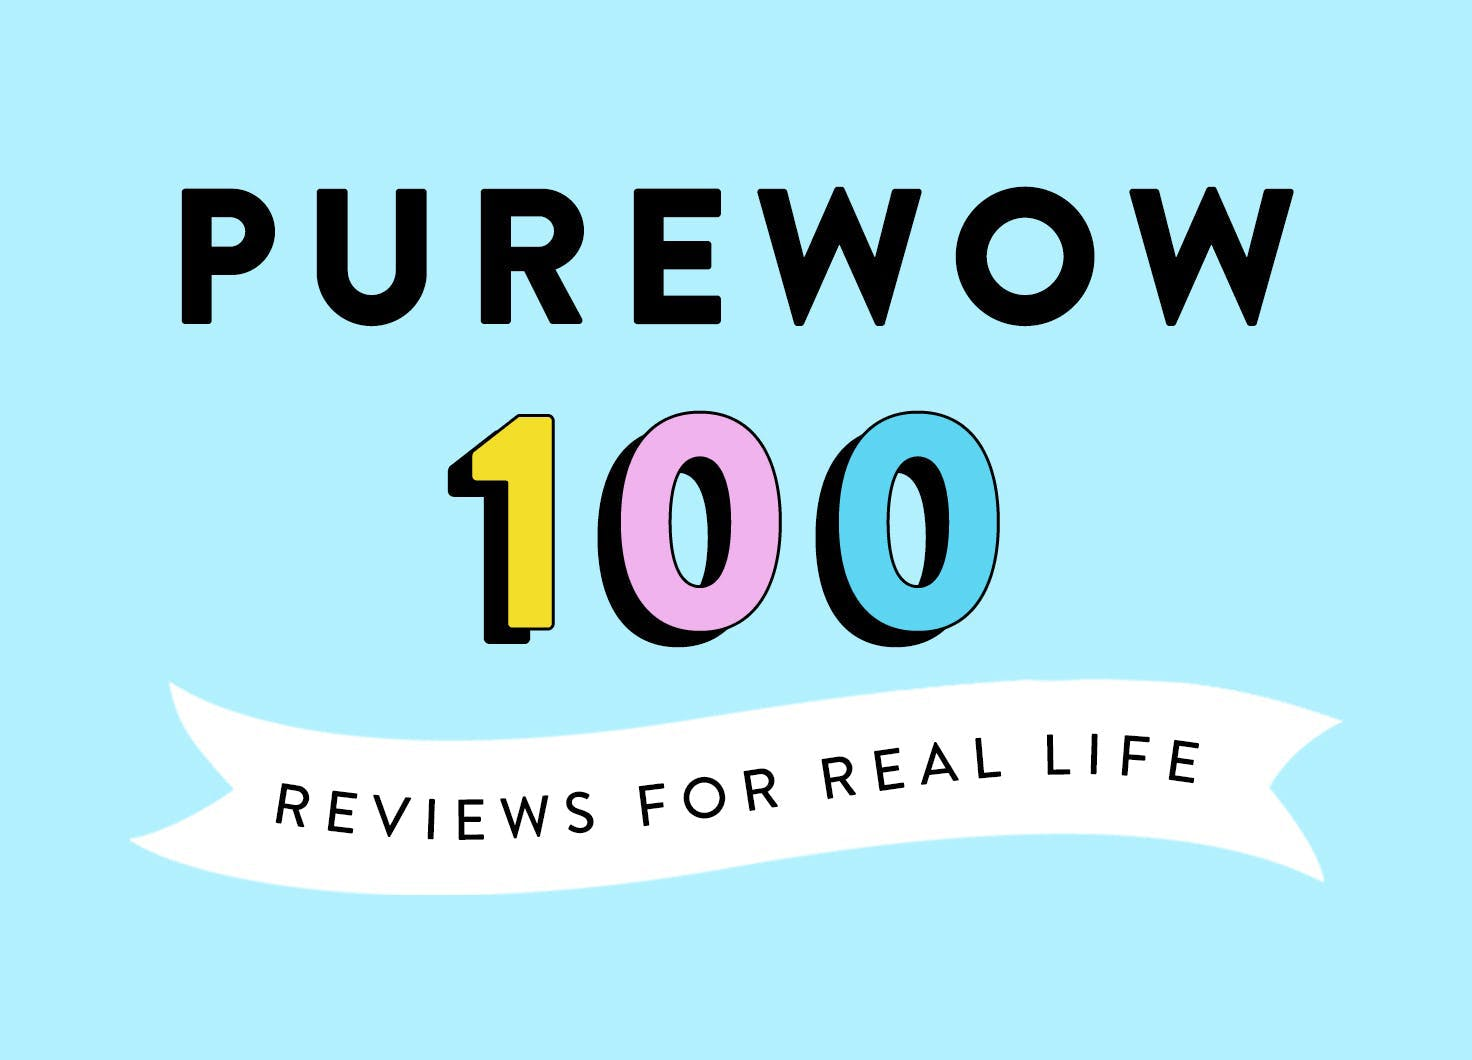 Introducing the PureWow100: A Whole New Approach to Reviews